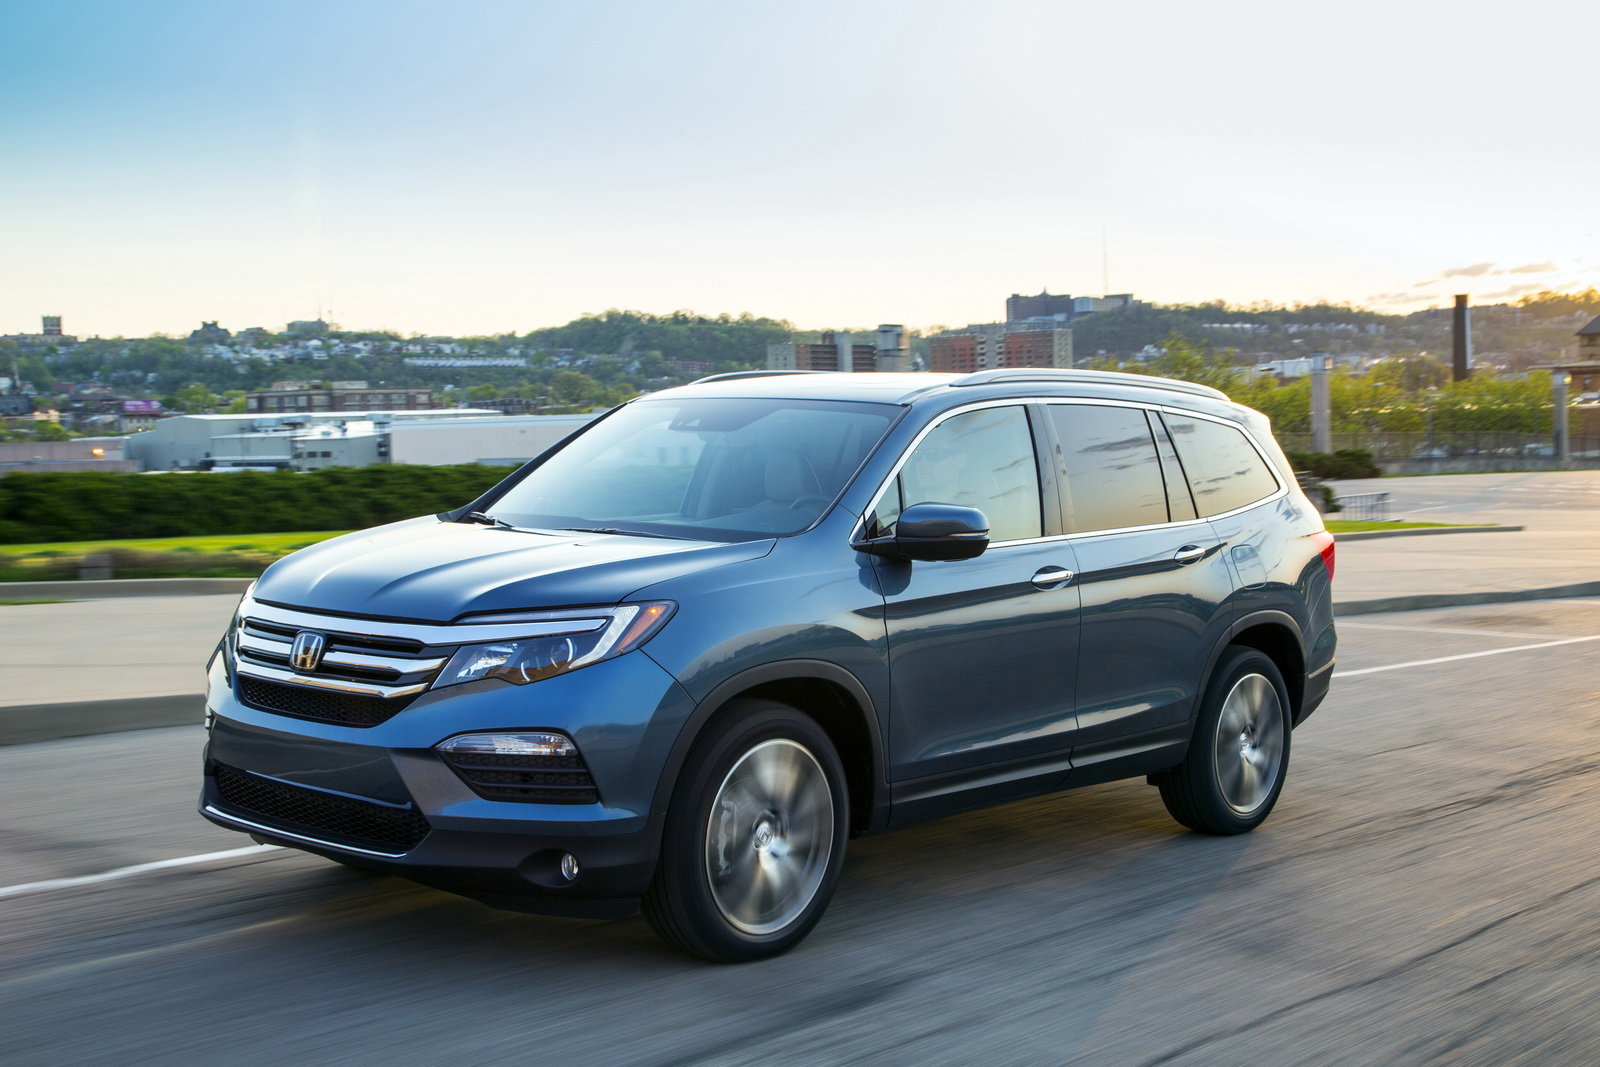 2017 honda pilot available now with apple carplay for Honda pilot models 2017